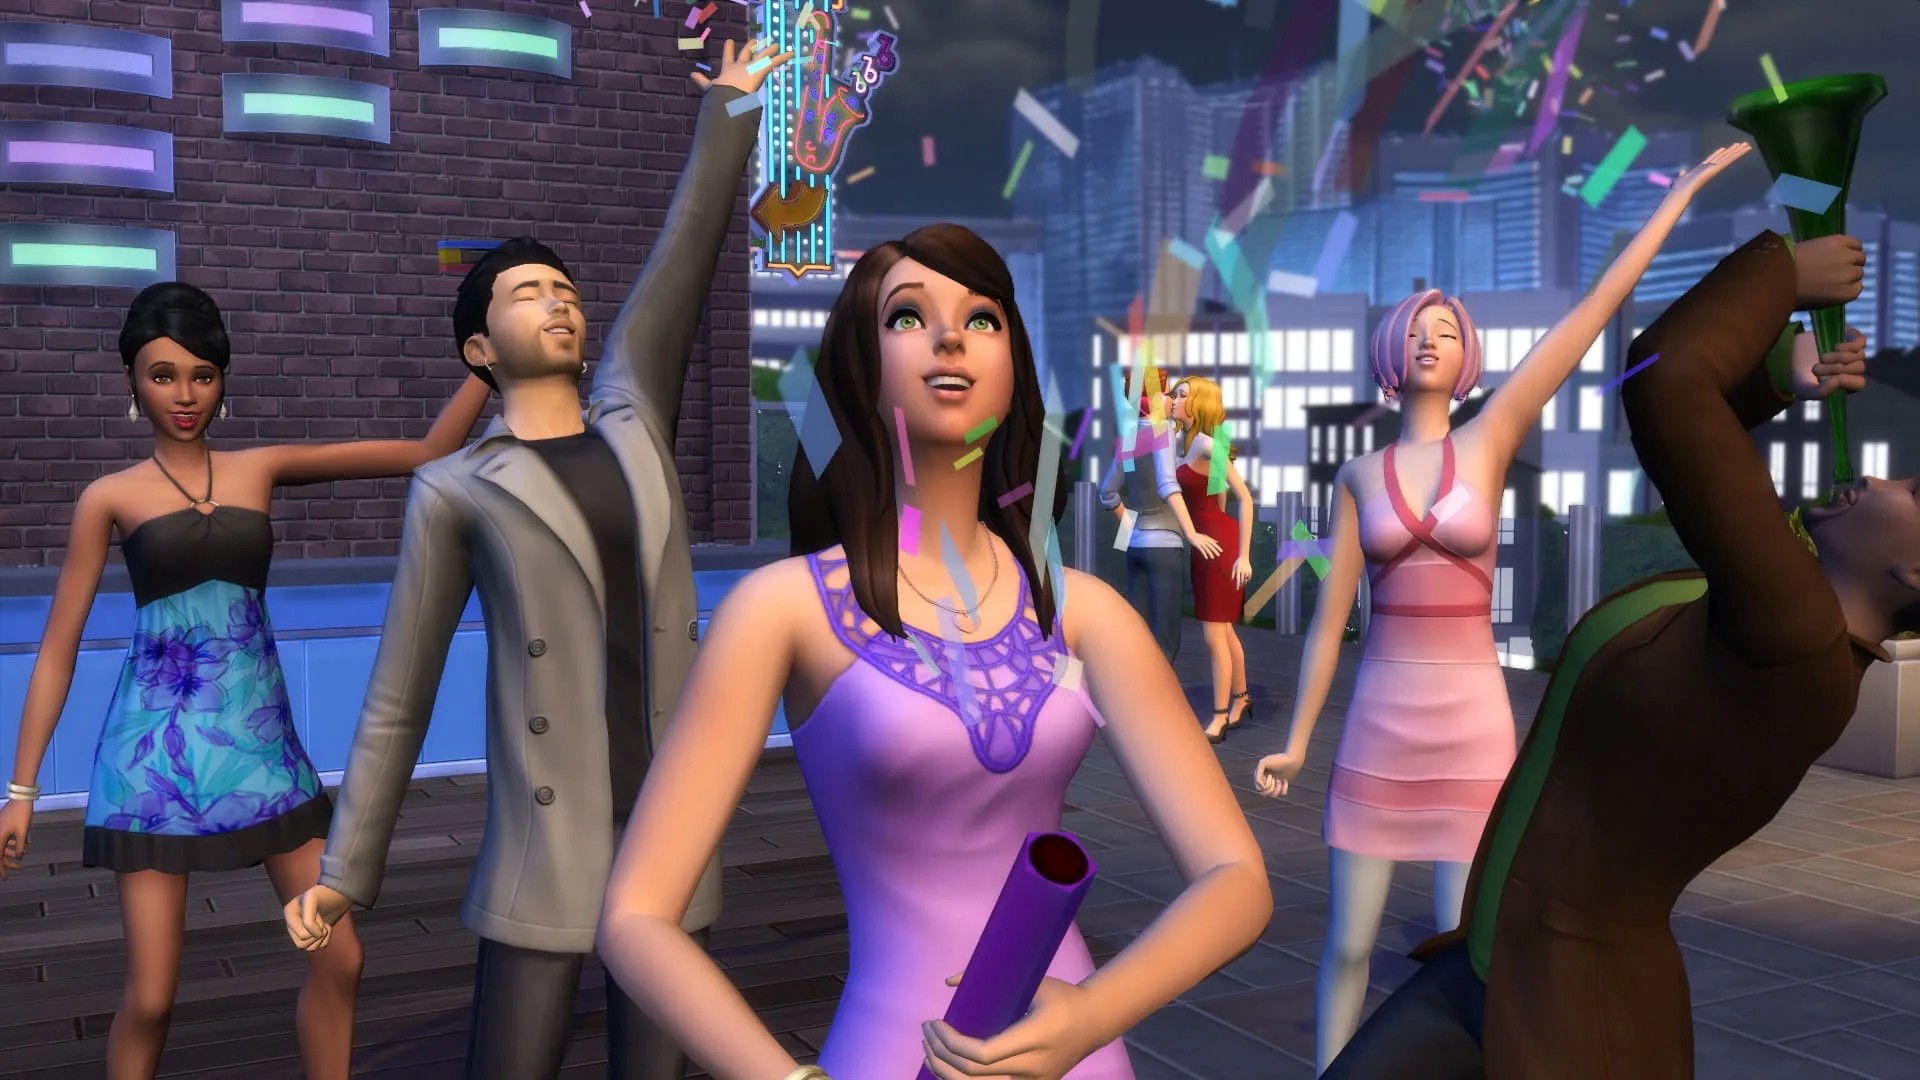 The Sims 4 Celebrates Over 30 Million Players On PC And Consoles